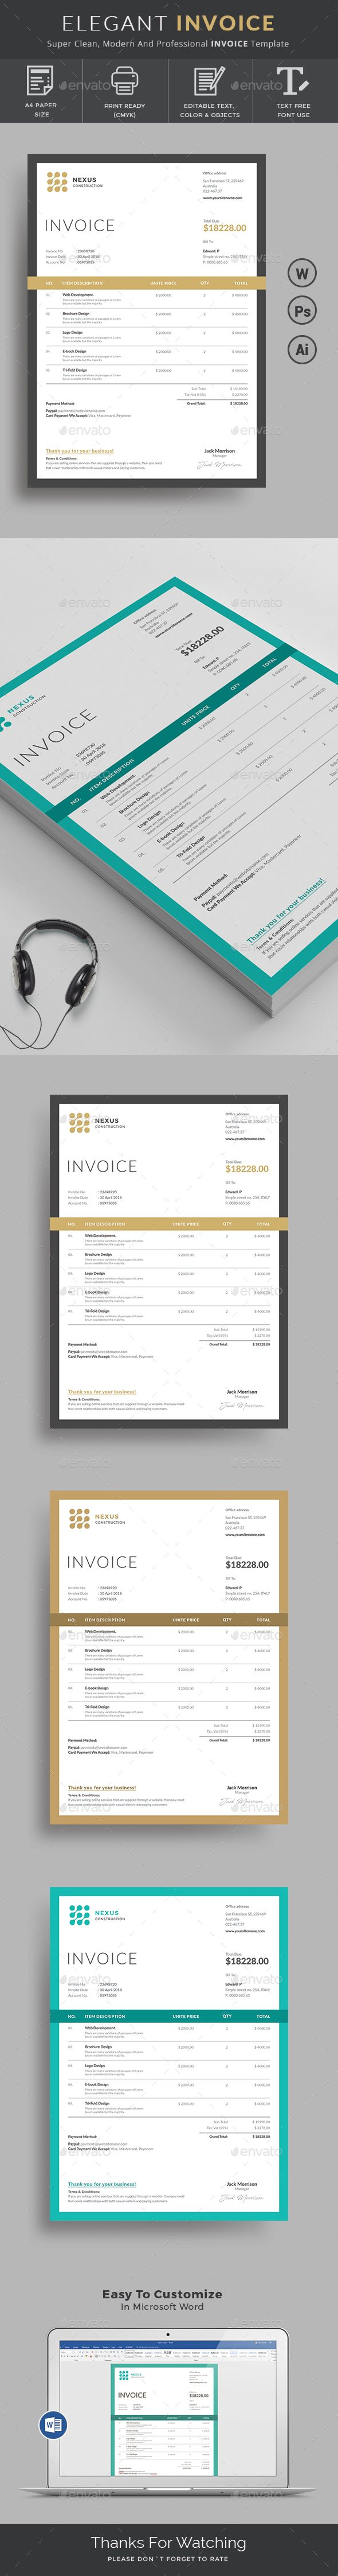 Invoice Template PSD, Vector EPS, AI, MS Word